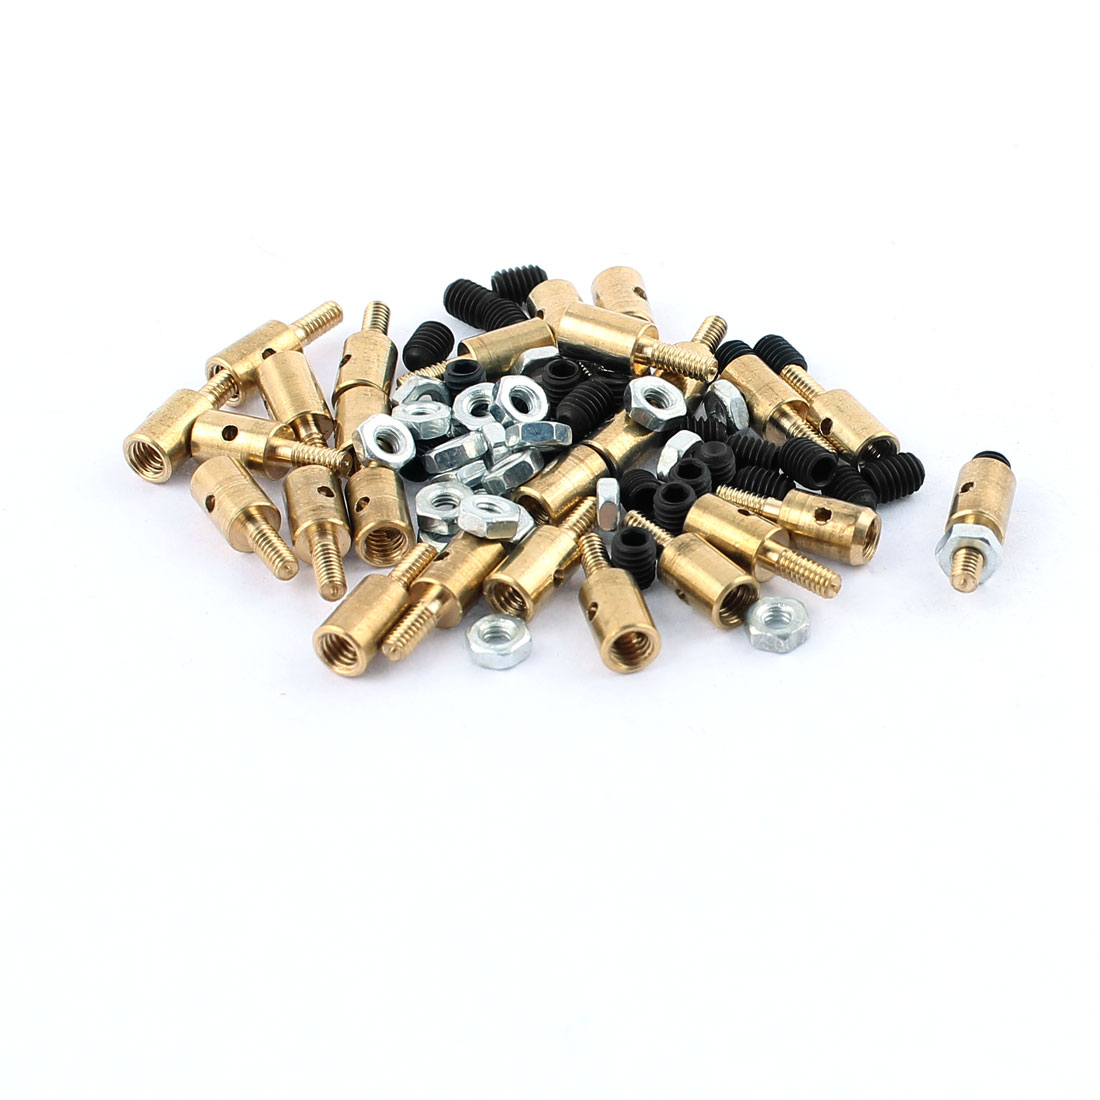 25 Pcs 4 x 1.2 x 11mm Copper Linkage Stoppers PRC Push Rod Keepers w Screws